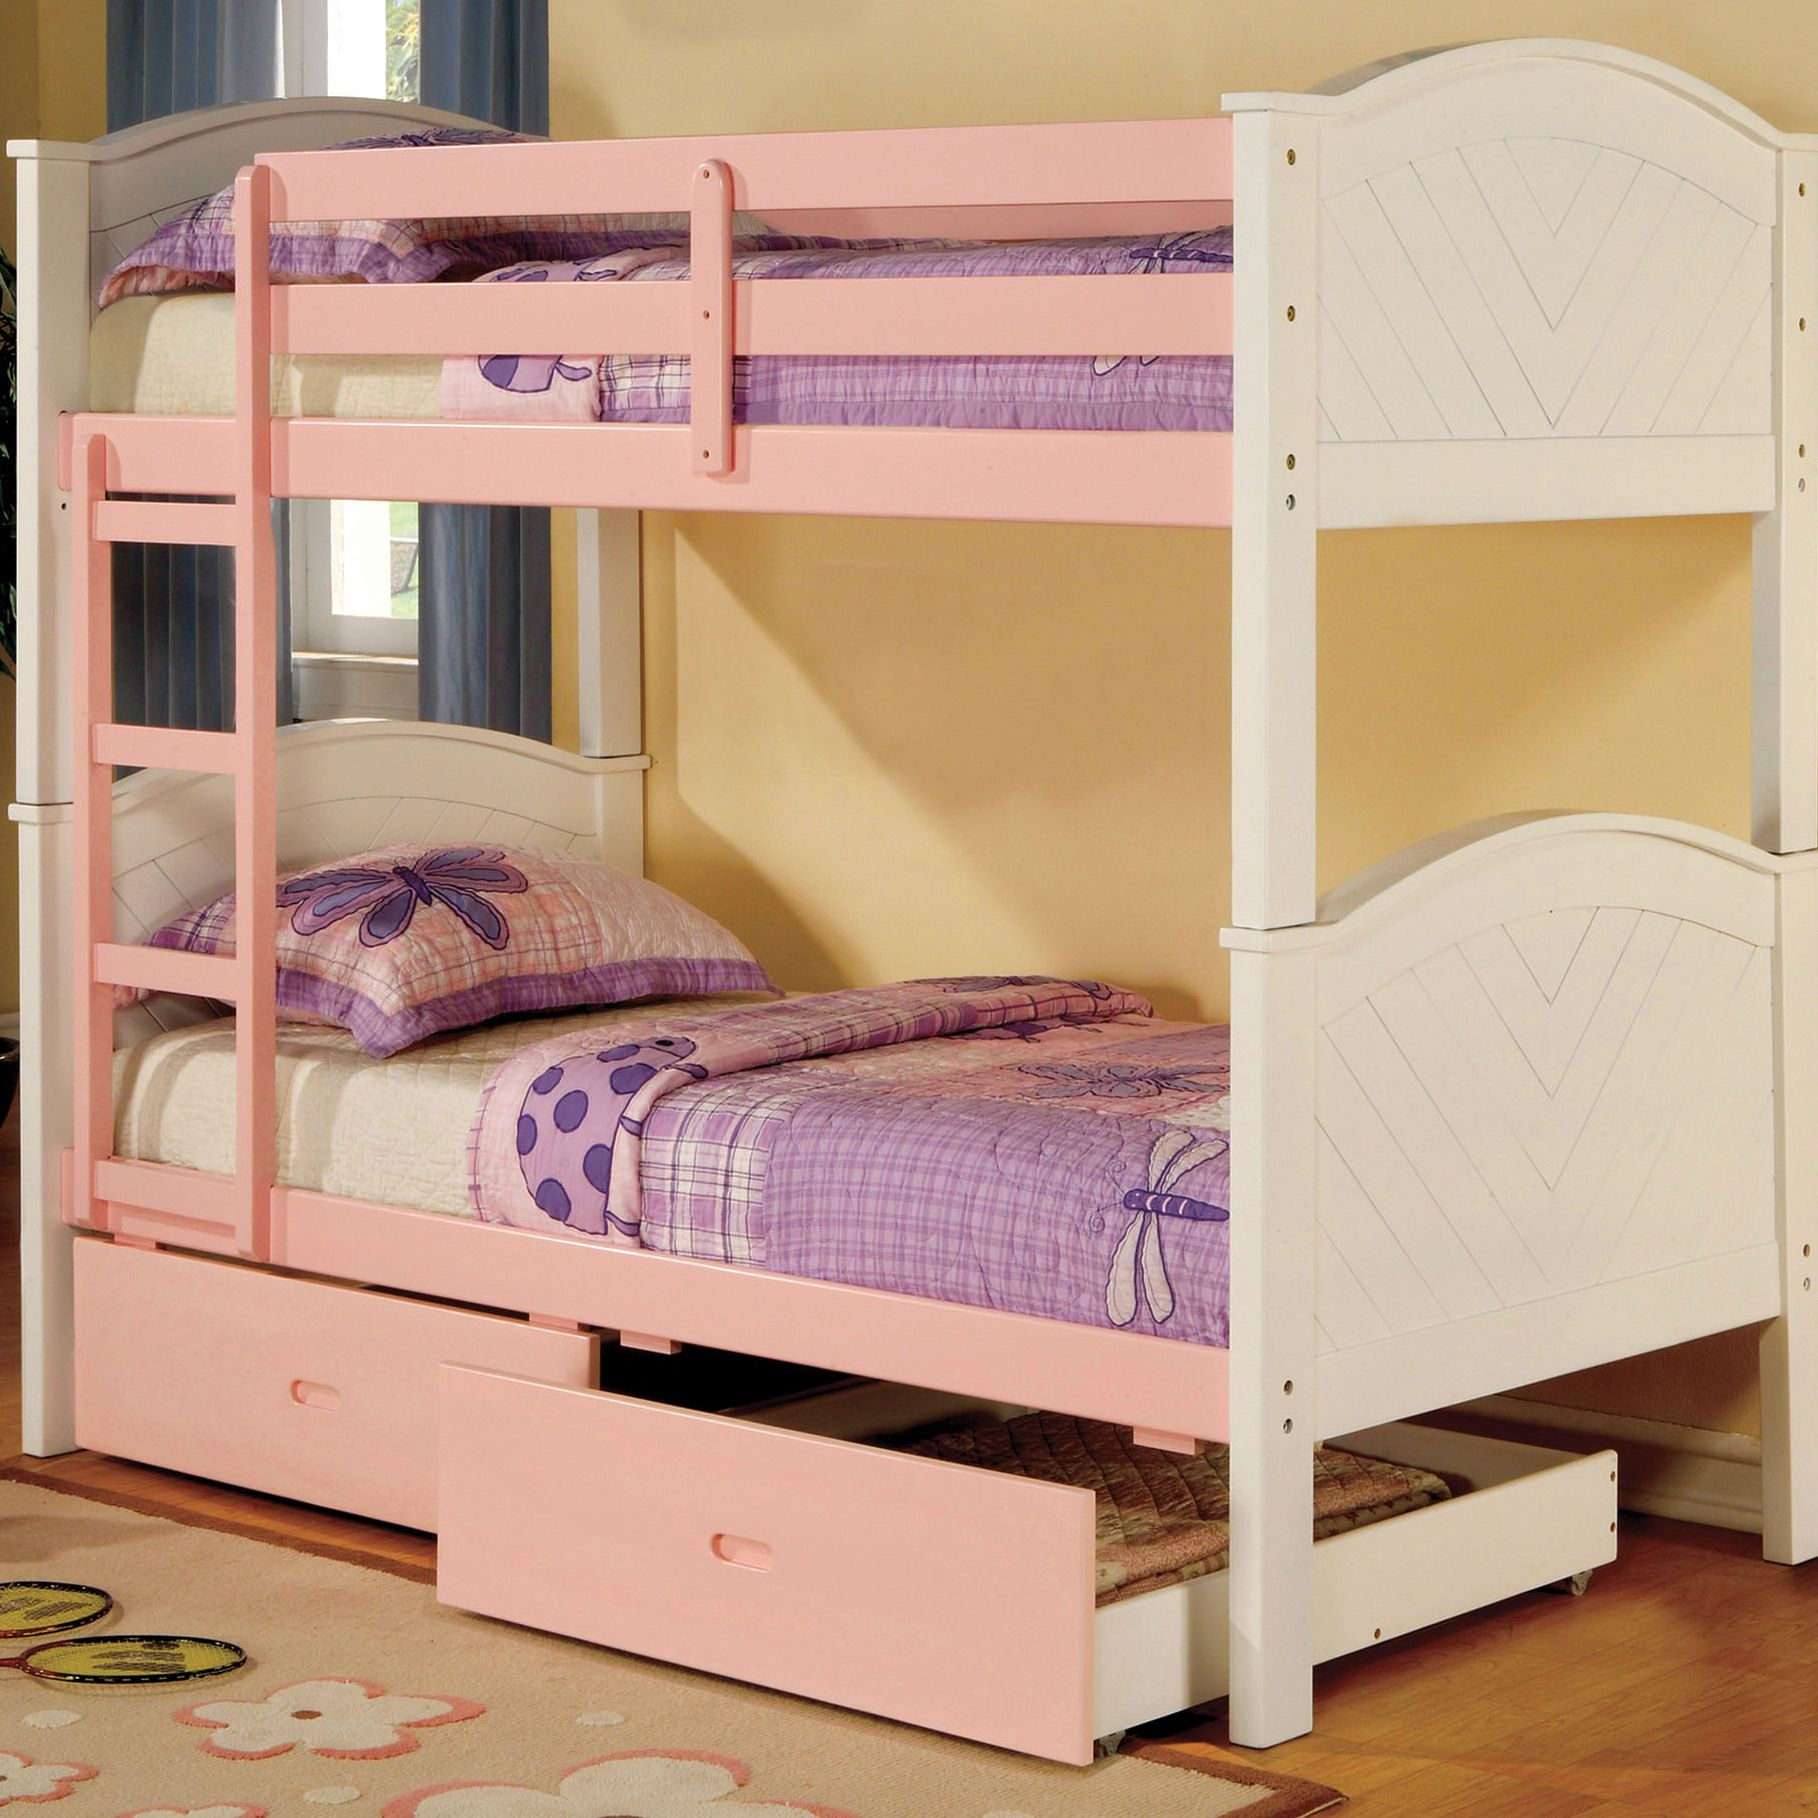 Would have to add a rail for the bottom bed Twin bunk